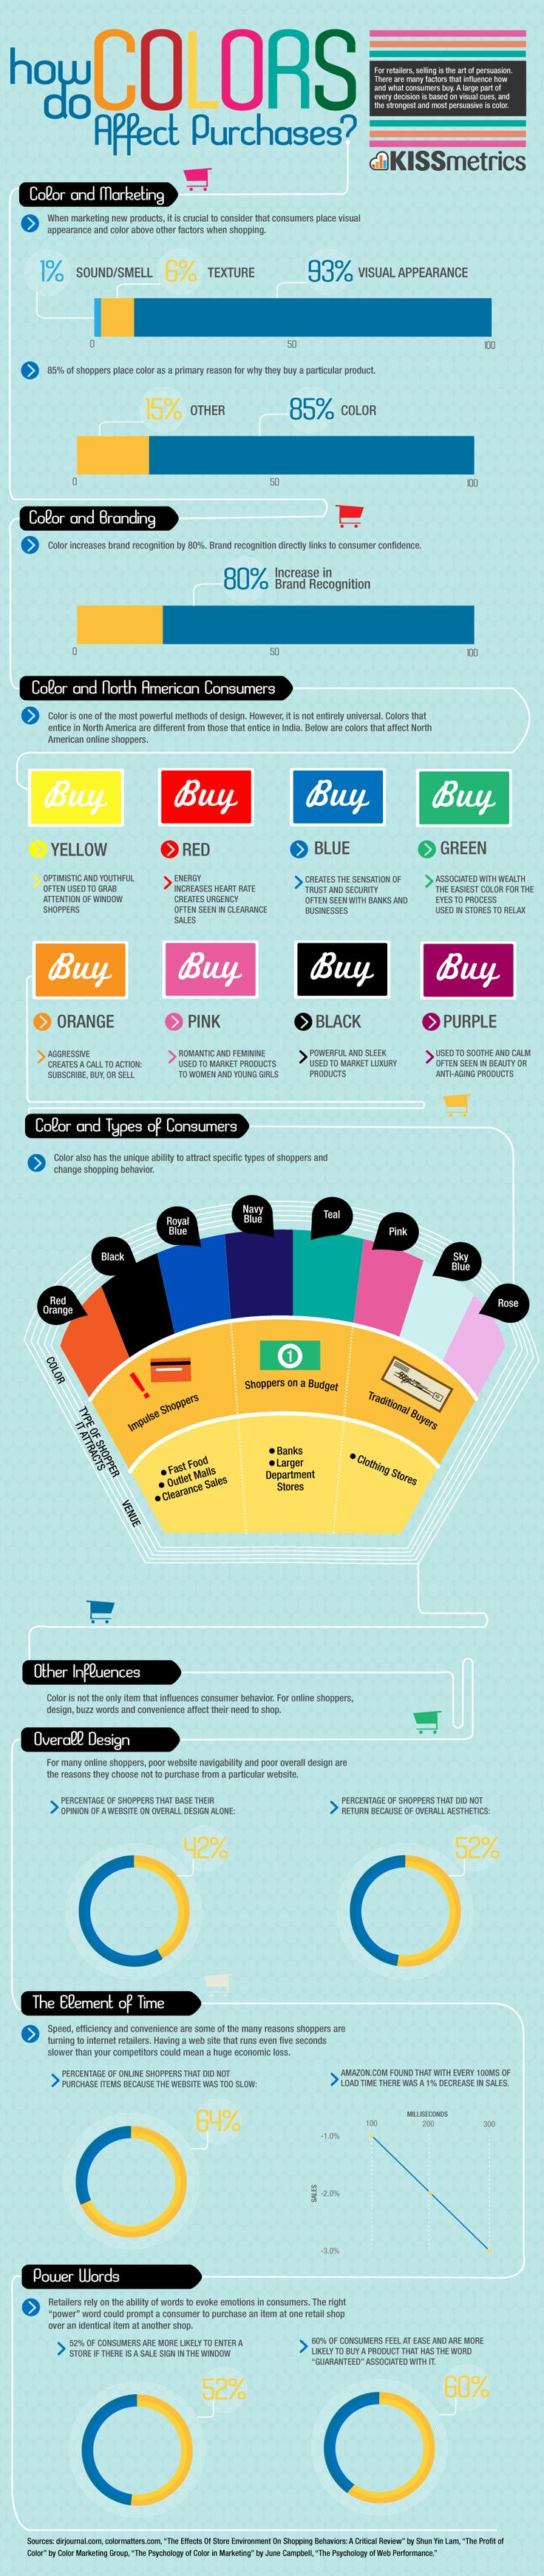 How do colours affect purchases? [Infographic]   Pitter Pattern